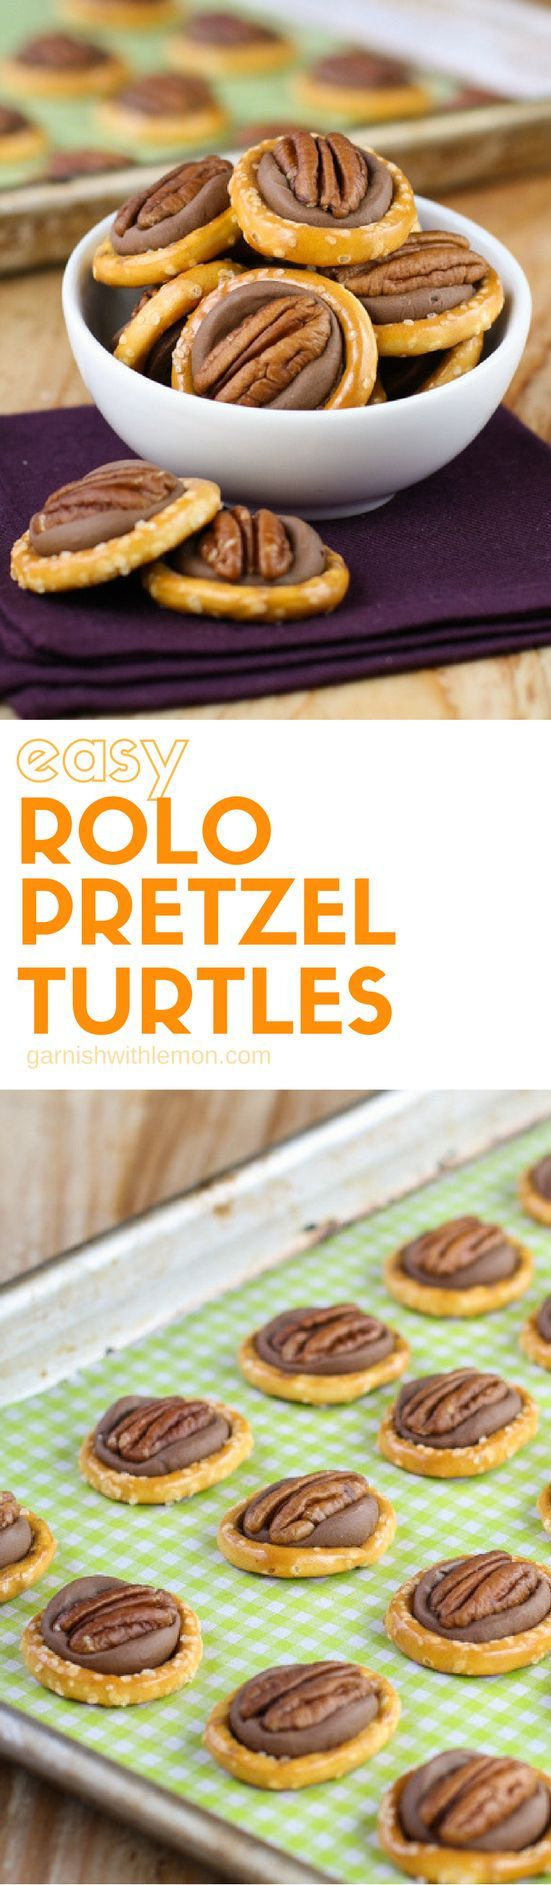 This 3-ingredient recipe for Easy Rolo Pretzel Turtles is always a hit at the holidays!